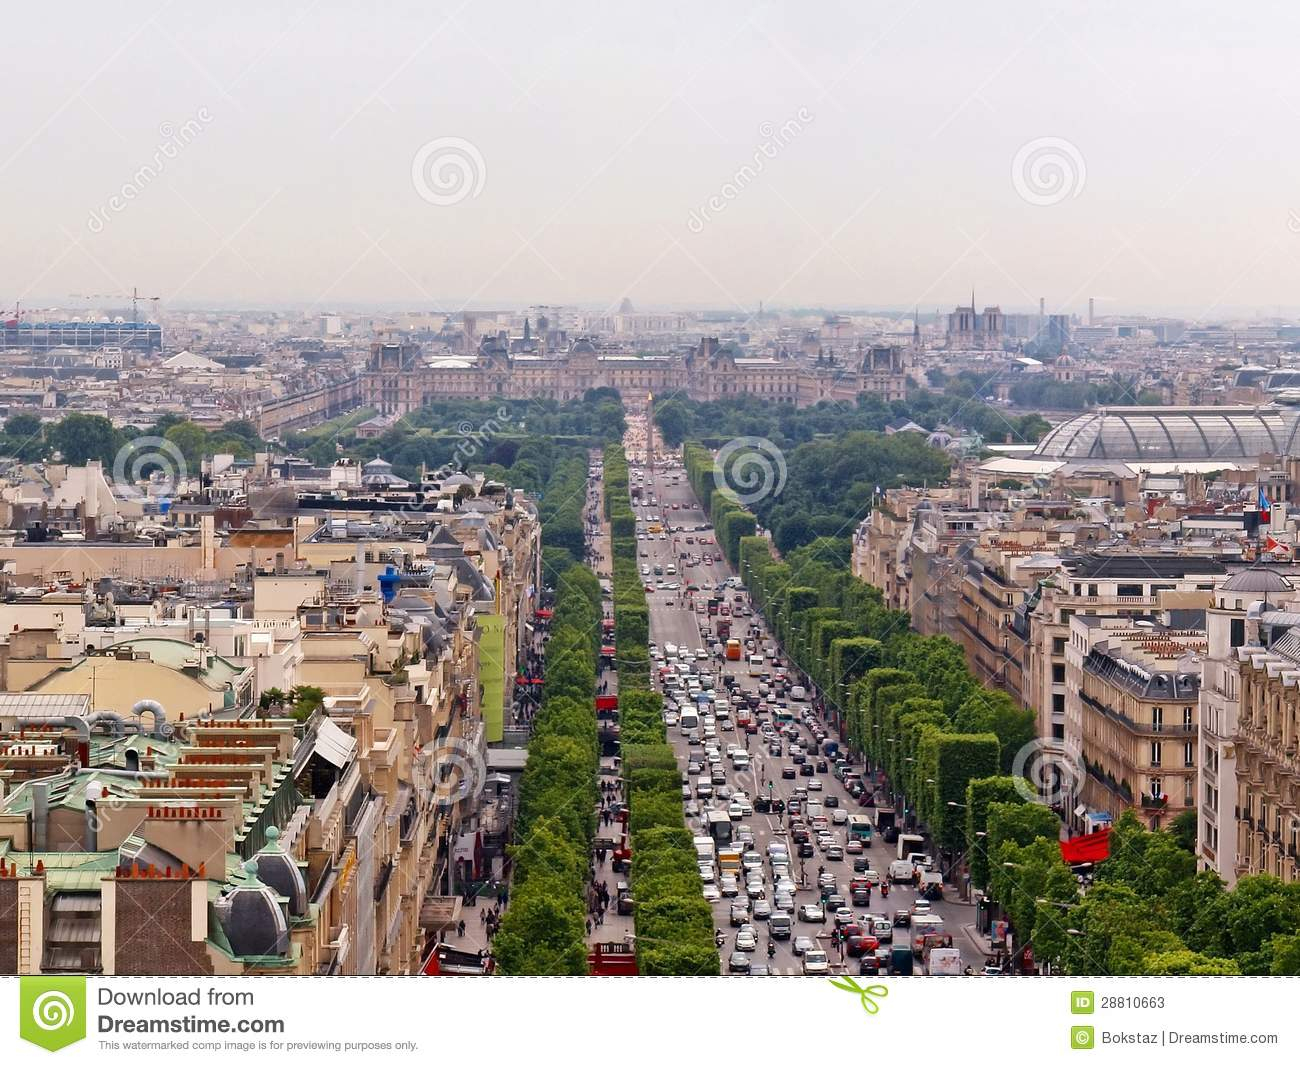 How to get from Champs-Elysées to Louvre by subway, bus, taxi, towncar, foot or bike